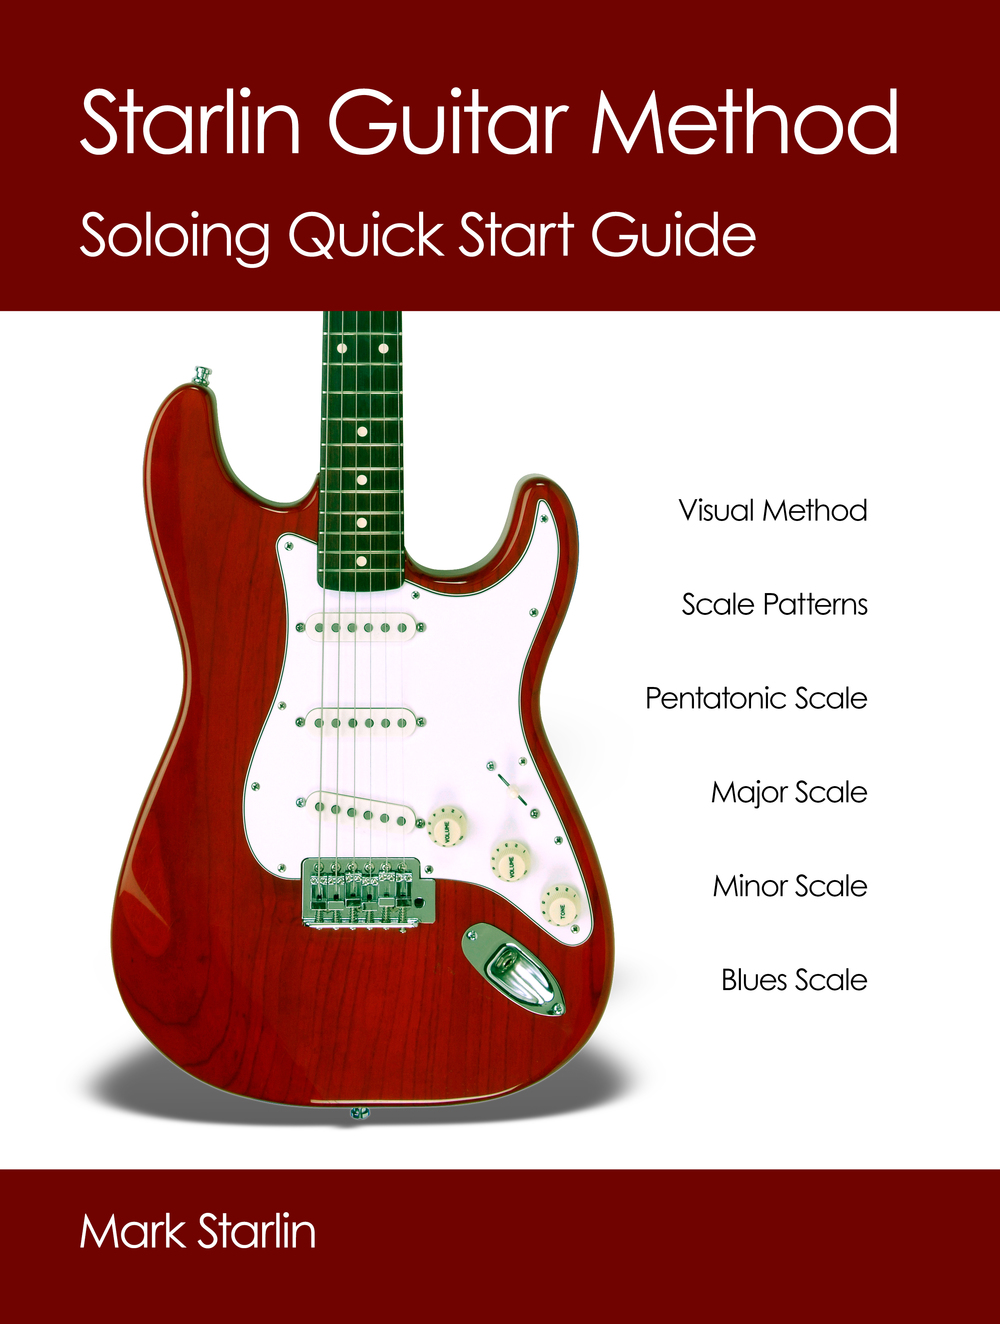 guitar-soloing-quick-start-guide.jpg